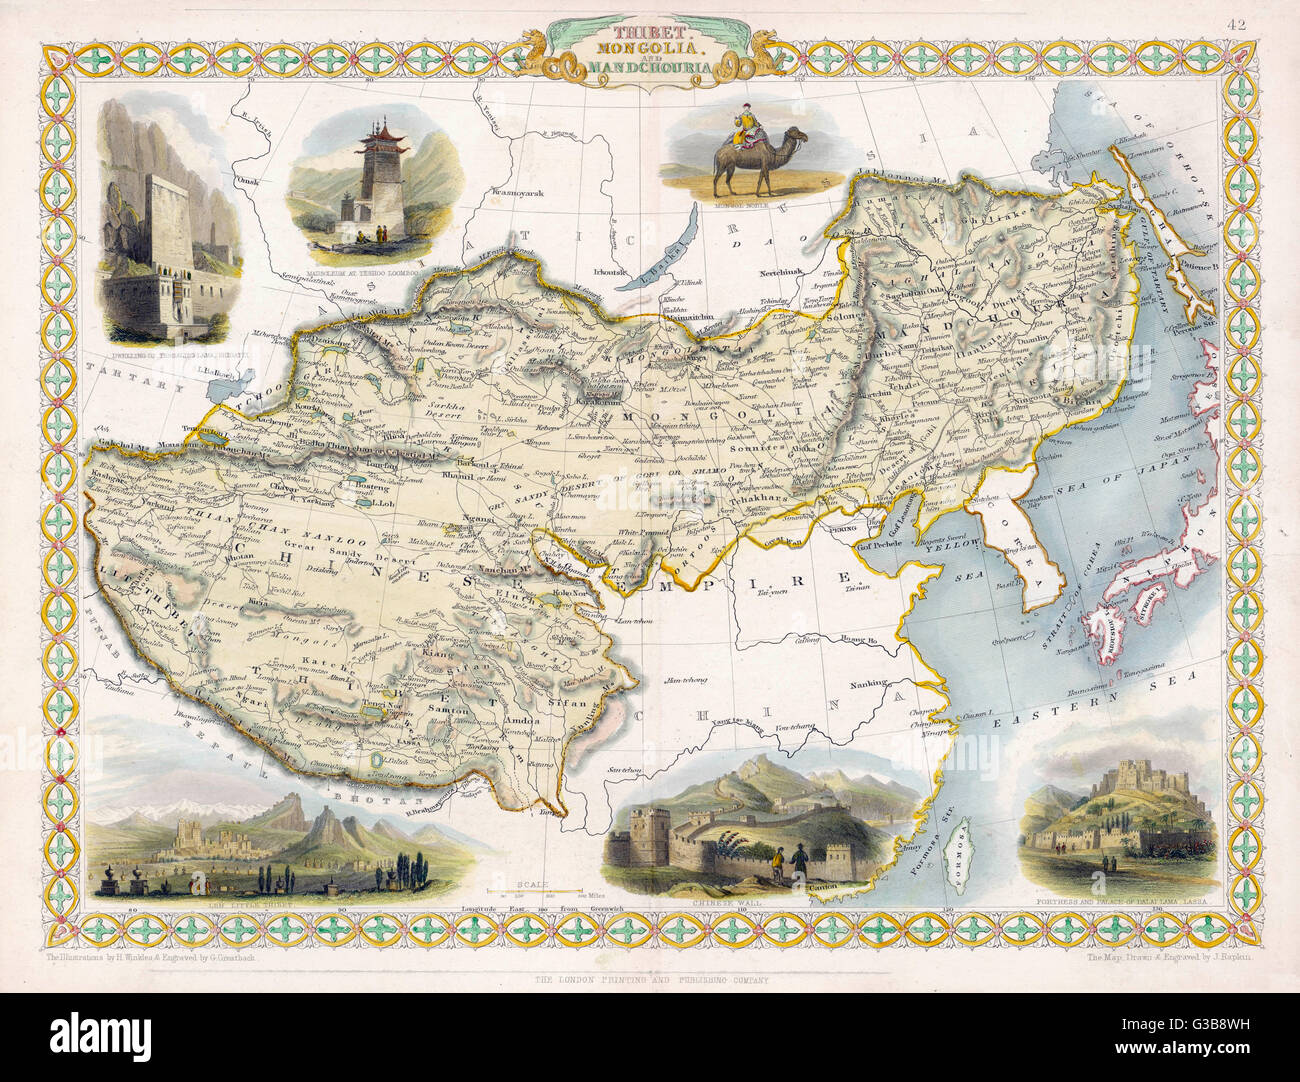 Map of Tibet, Mongolia and Manchuria        Date: 1845 - Stock Image